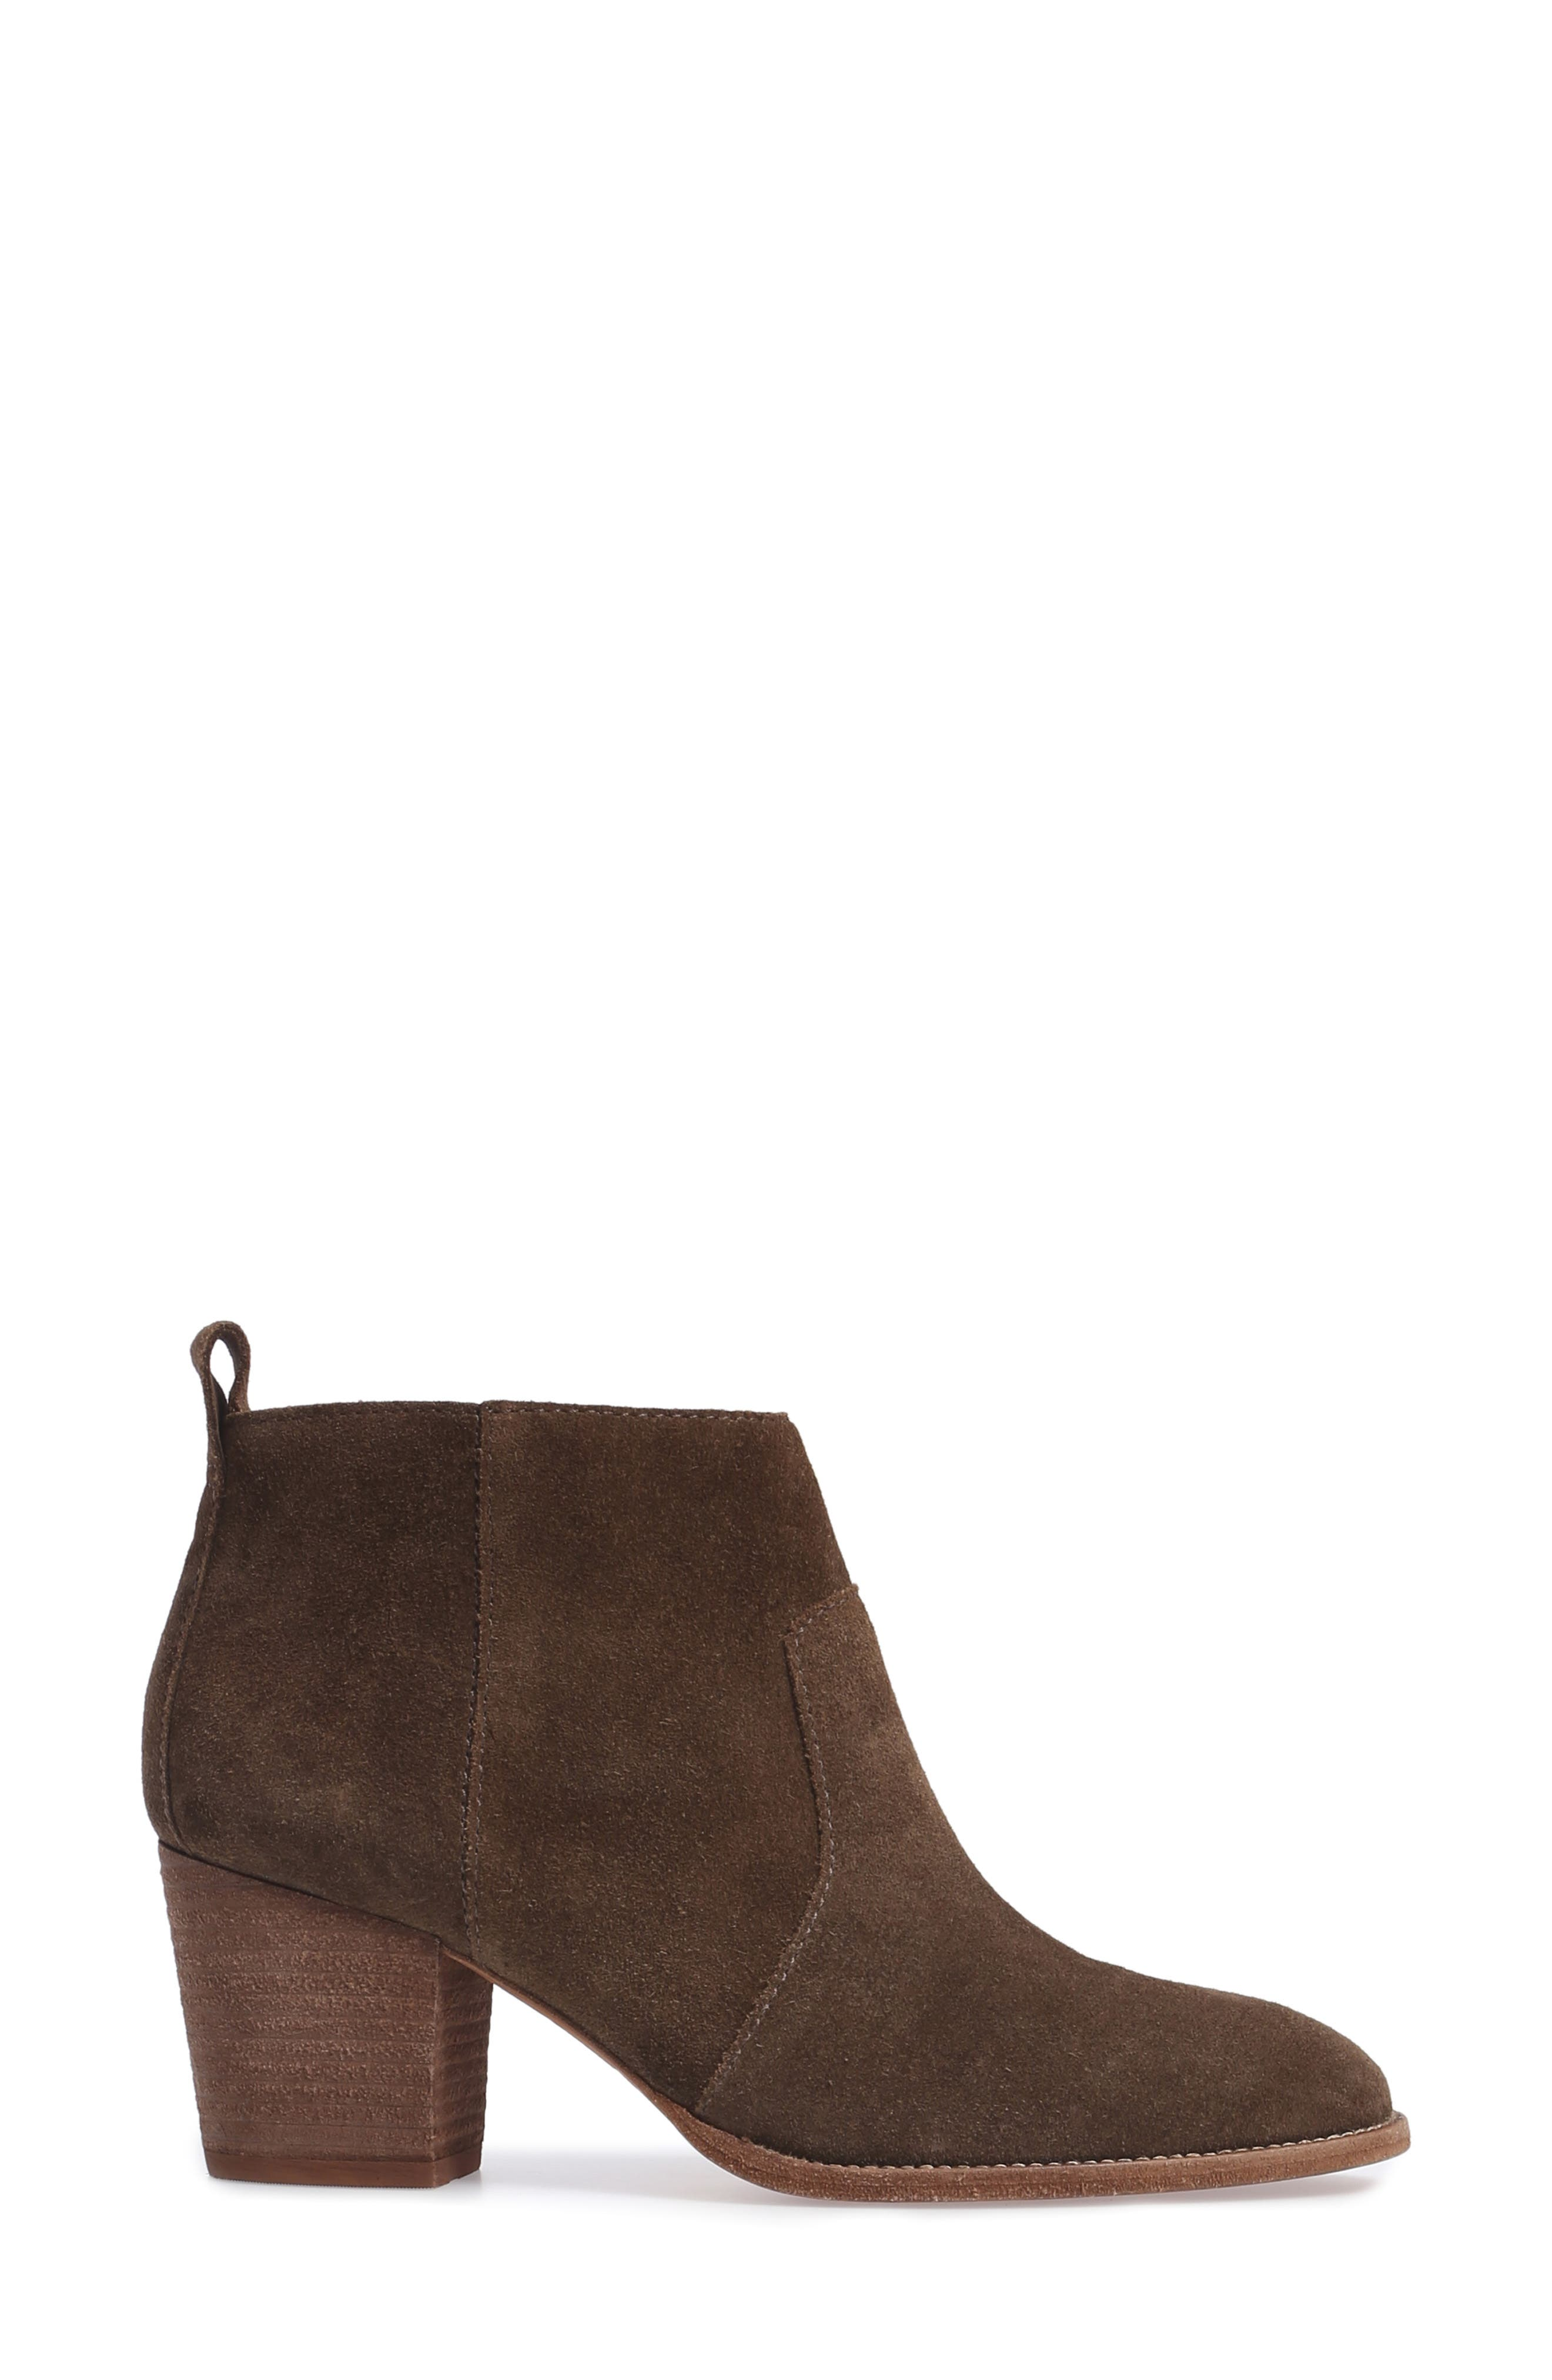 Brenner Bootie,                             Alternate thumbnail 3, color,                             Mink Suede